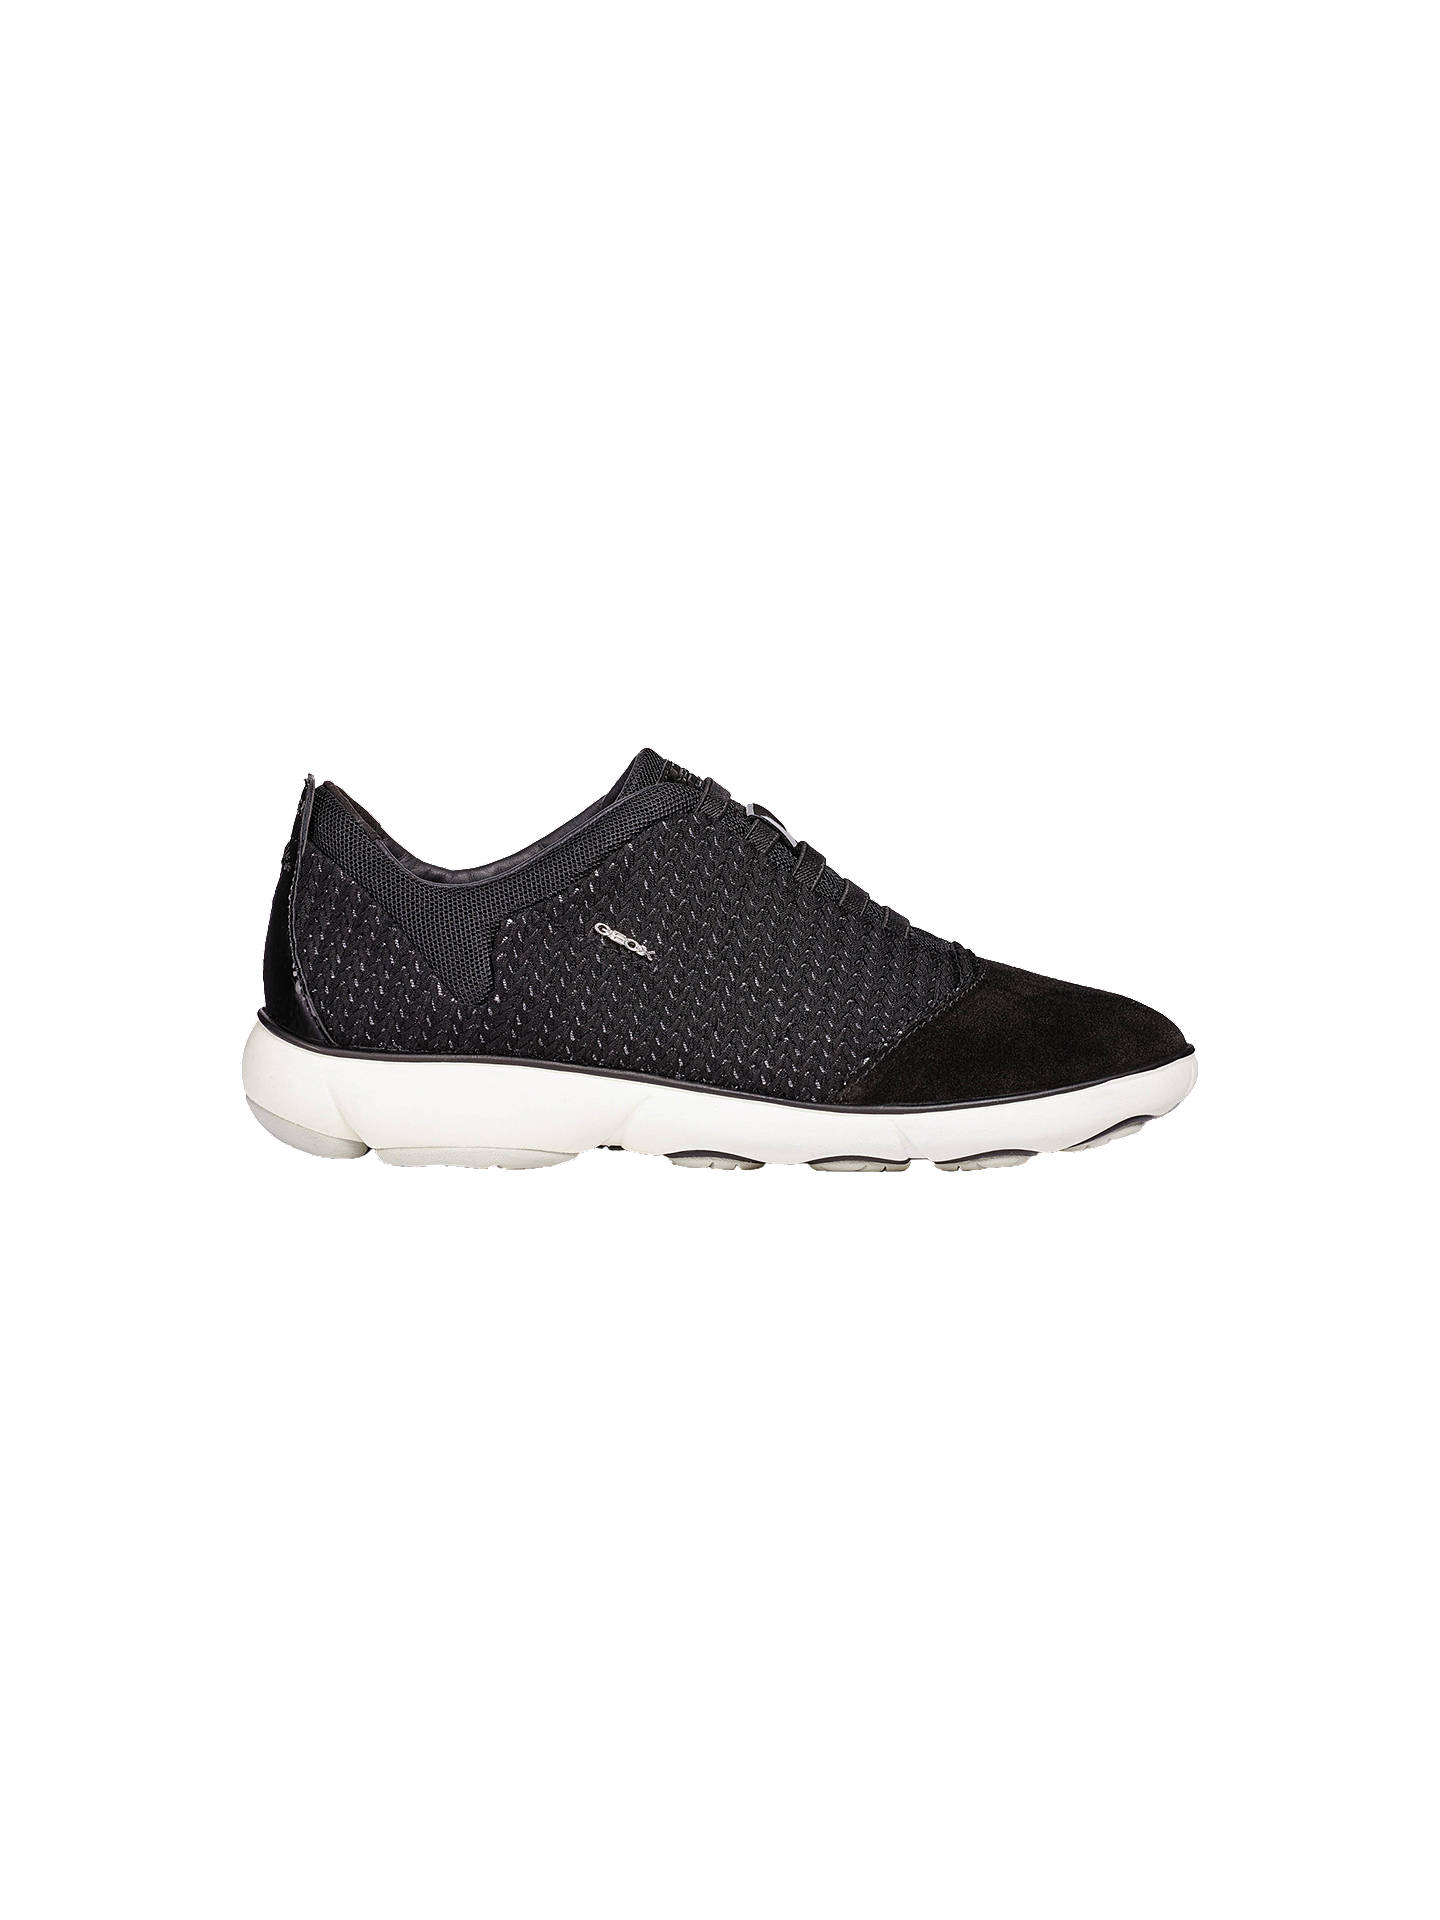 b059a61e32f Buy Geox Women's Nebula Breathable Slip On Trainers, Black, 7 Online at  johnlewis.